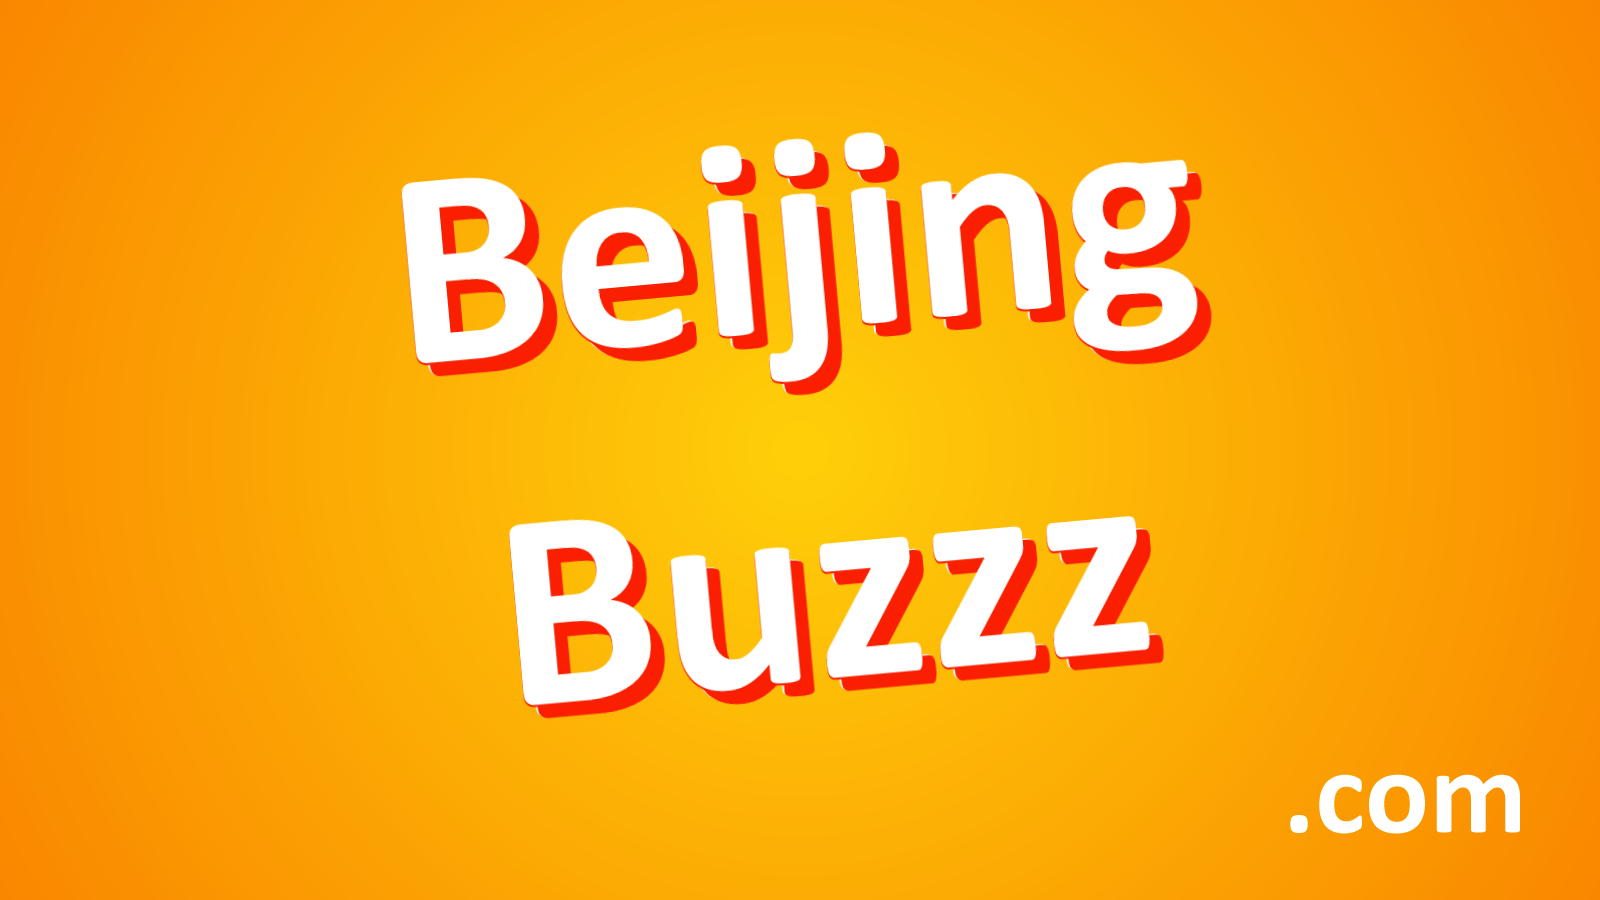 Yet again – West pushes HK BS as a way to try to take over China. What you need to know is all here ...    https://www.beijingbuzzz.com/china-travel-guide-videos/videos/hong-kong/    We`d like to move on, but the supremacist colonialists (and their useful idiots in HK) won`t give up .